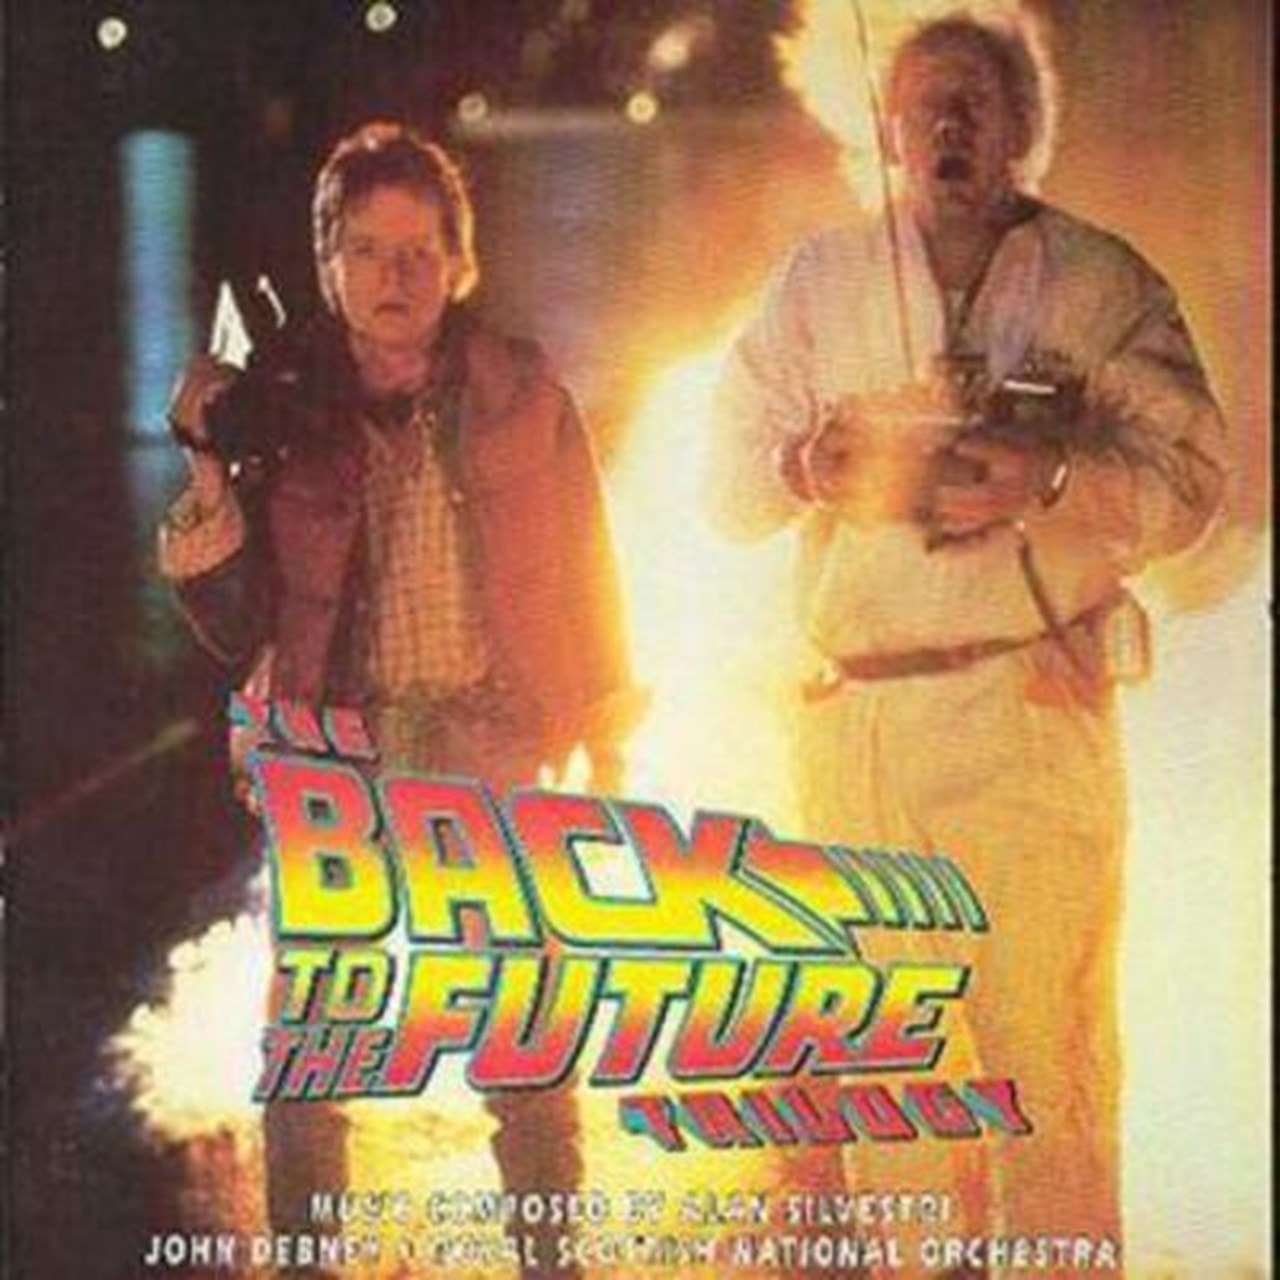 The Back to the Future Trilogy - 1